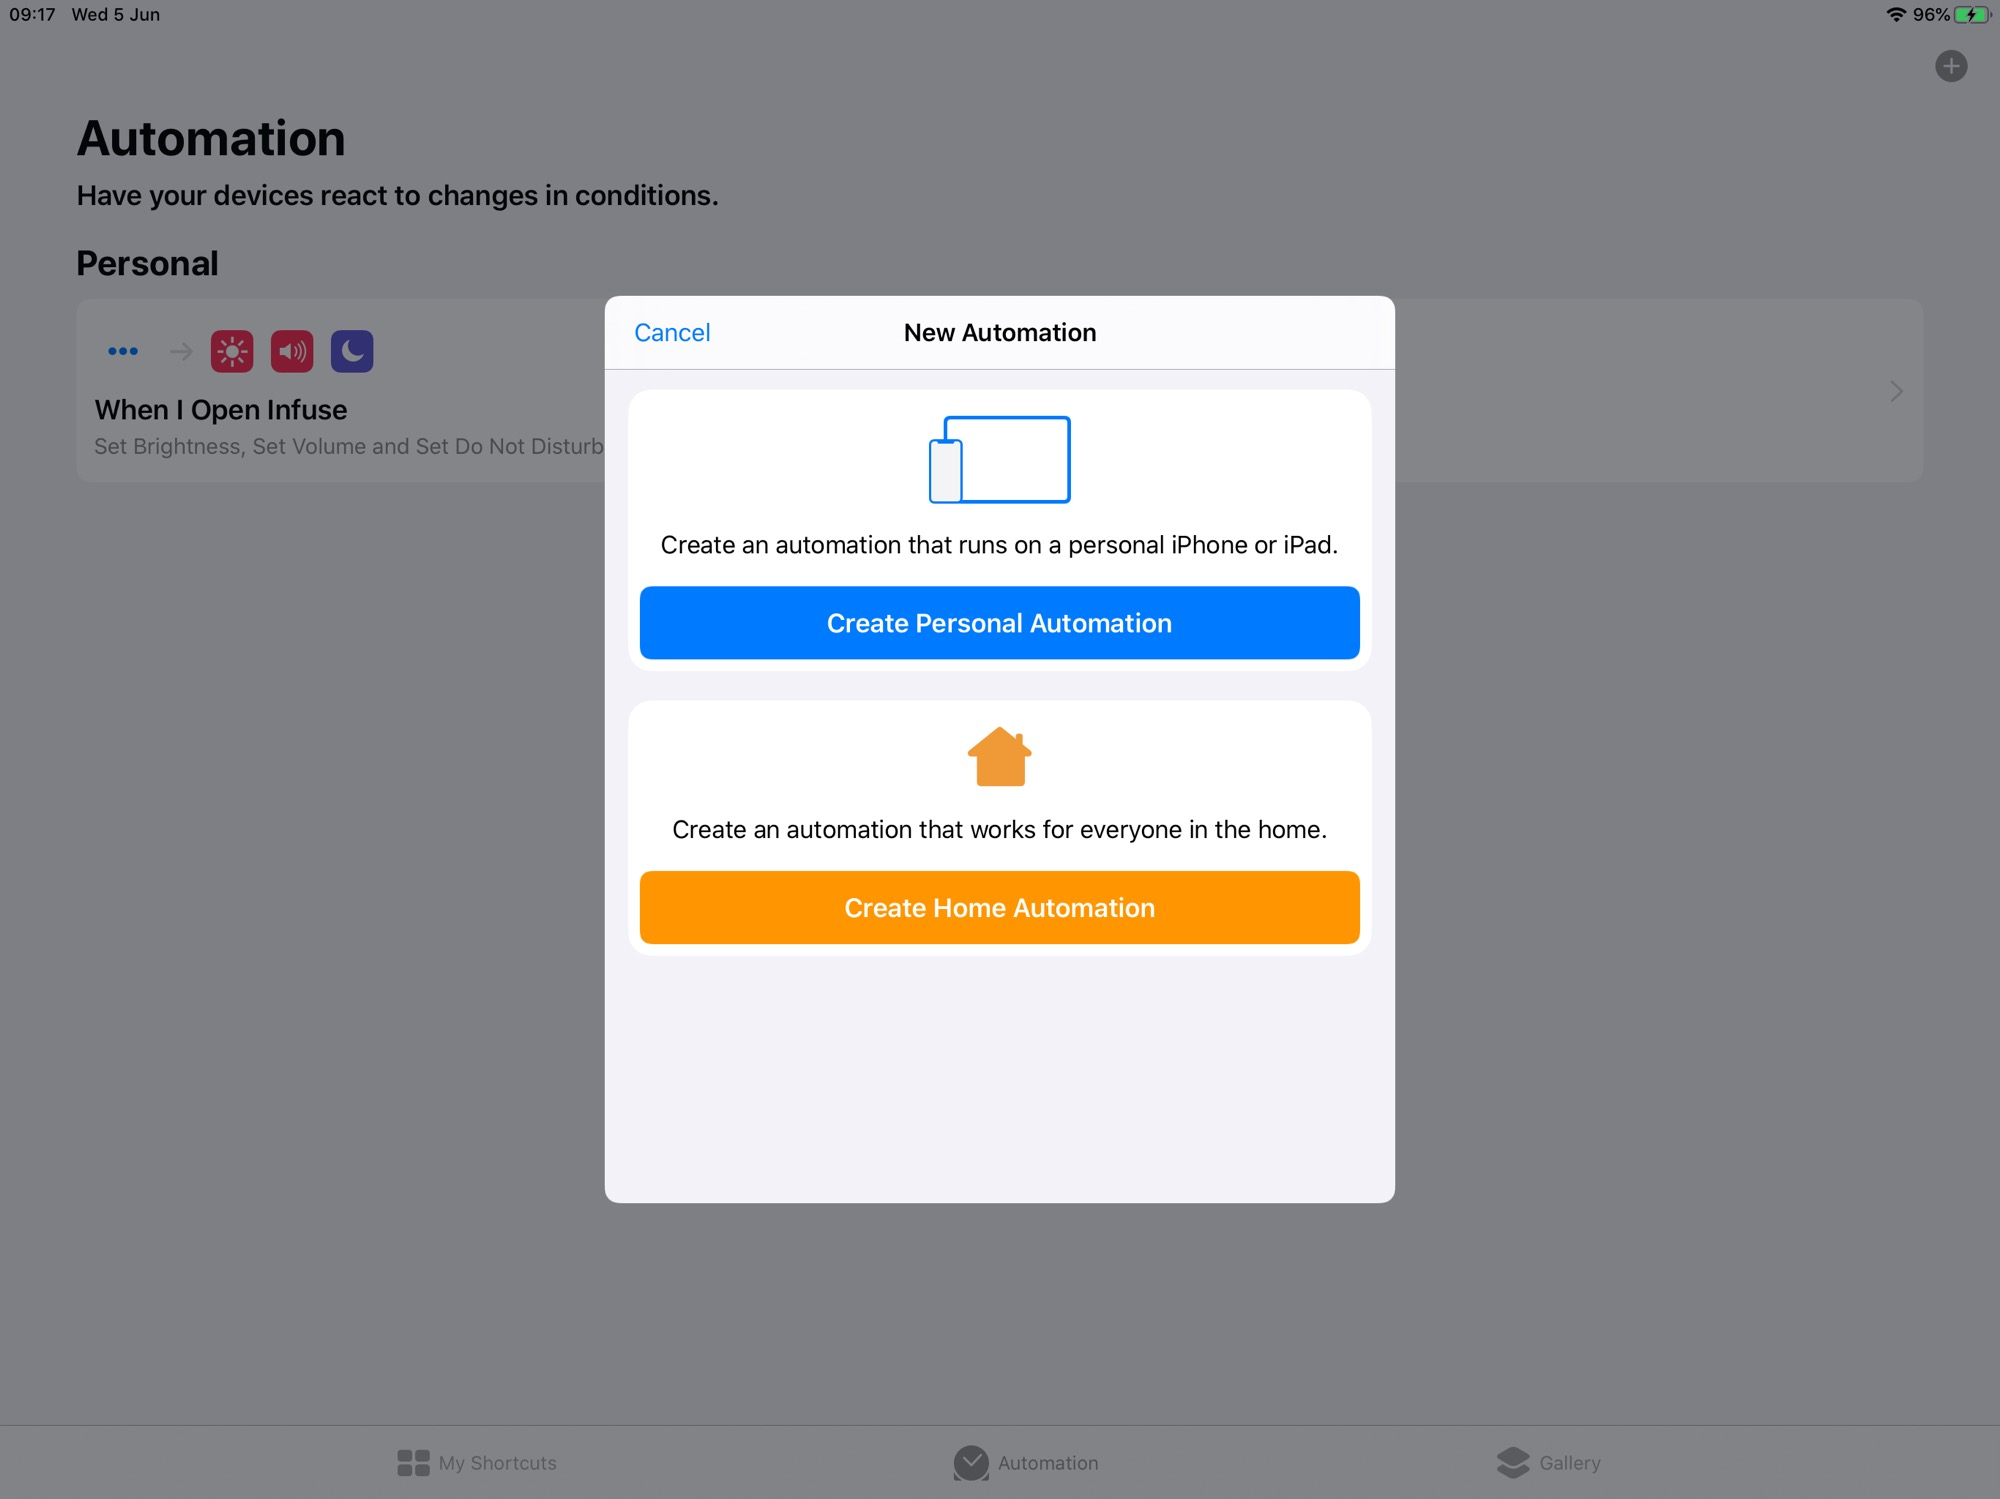 Shortcuts gains two new kinds of automation in iOS 13.